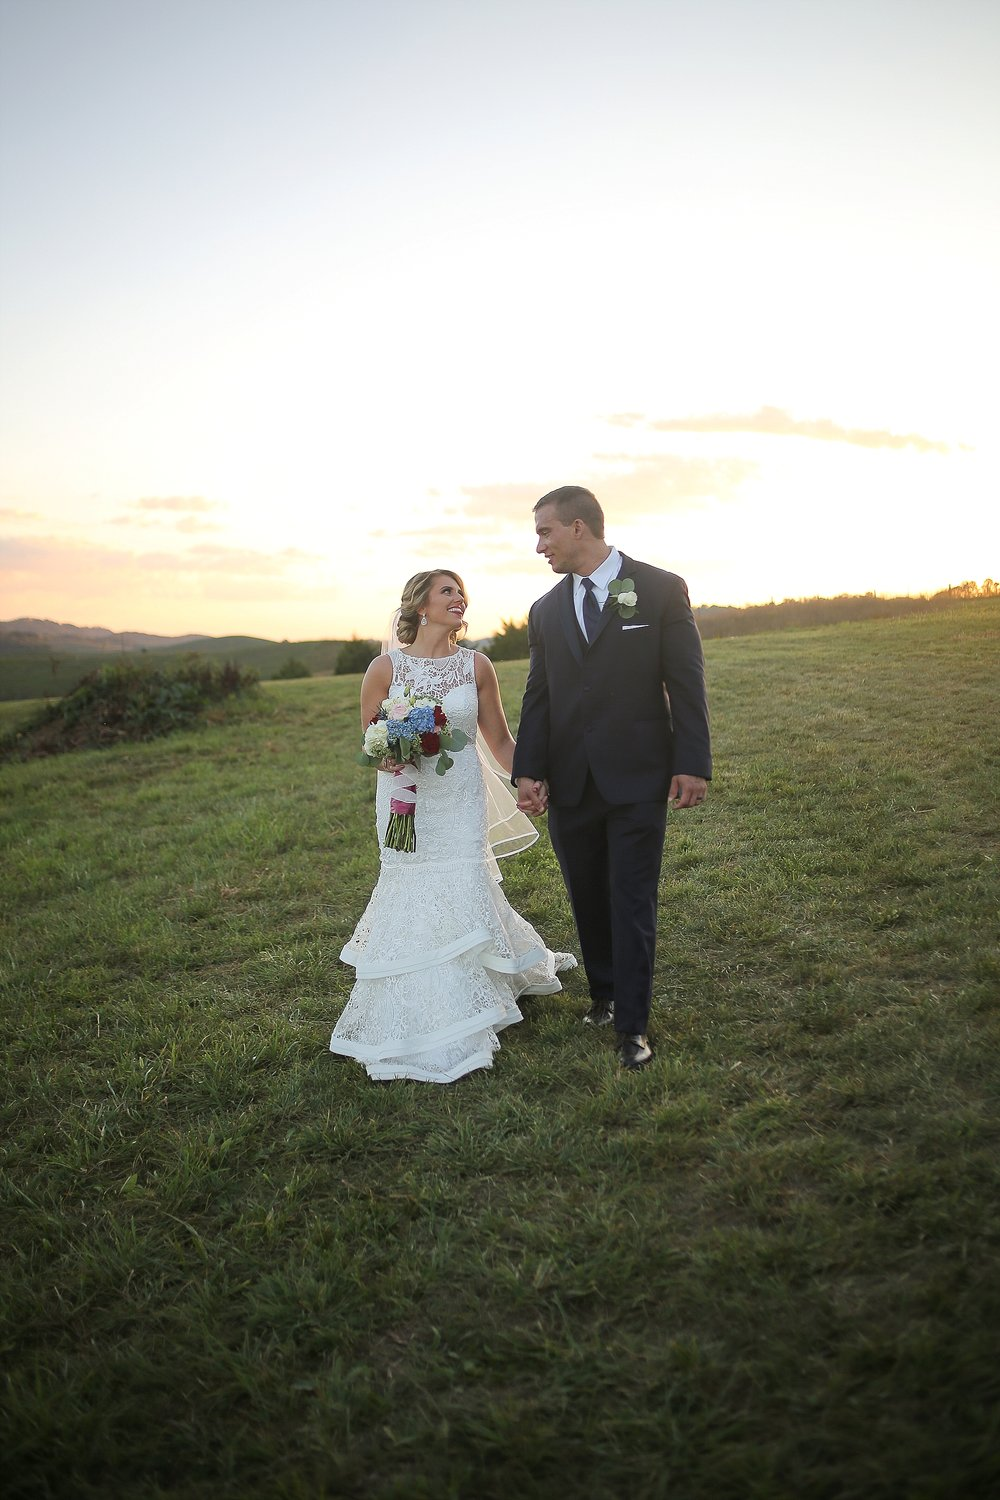 NeLea + Jesse's Backyard Wedding in Lebanon, Virginia | Southwest Virginia Wedding Photographers